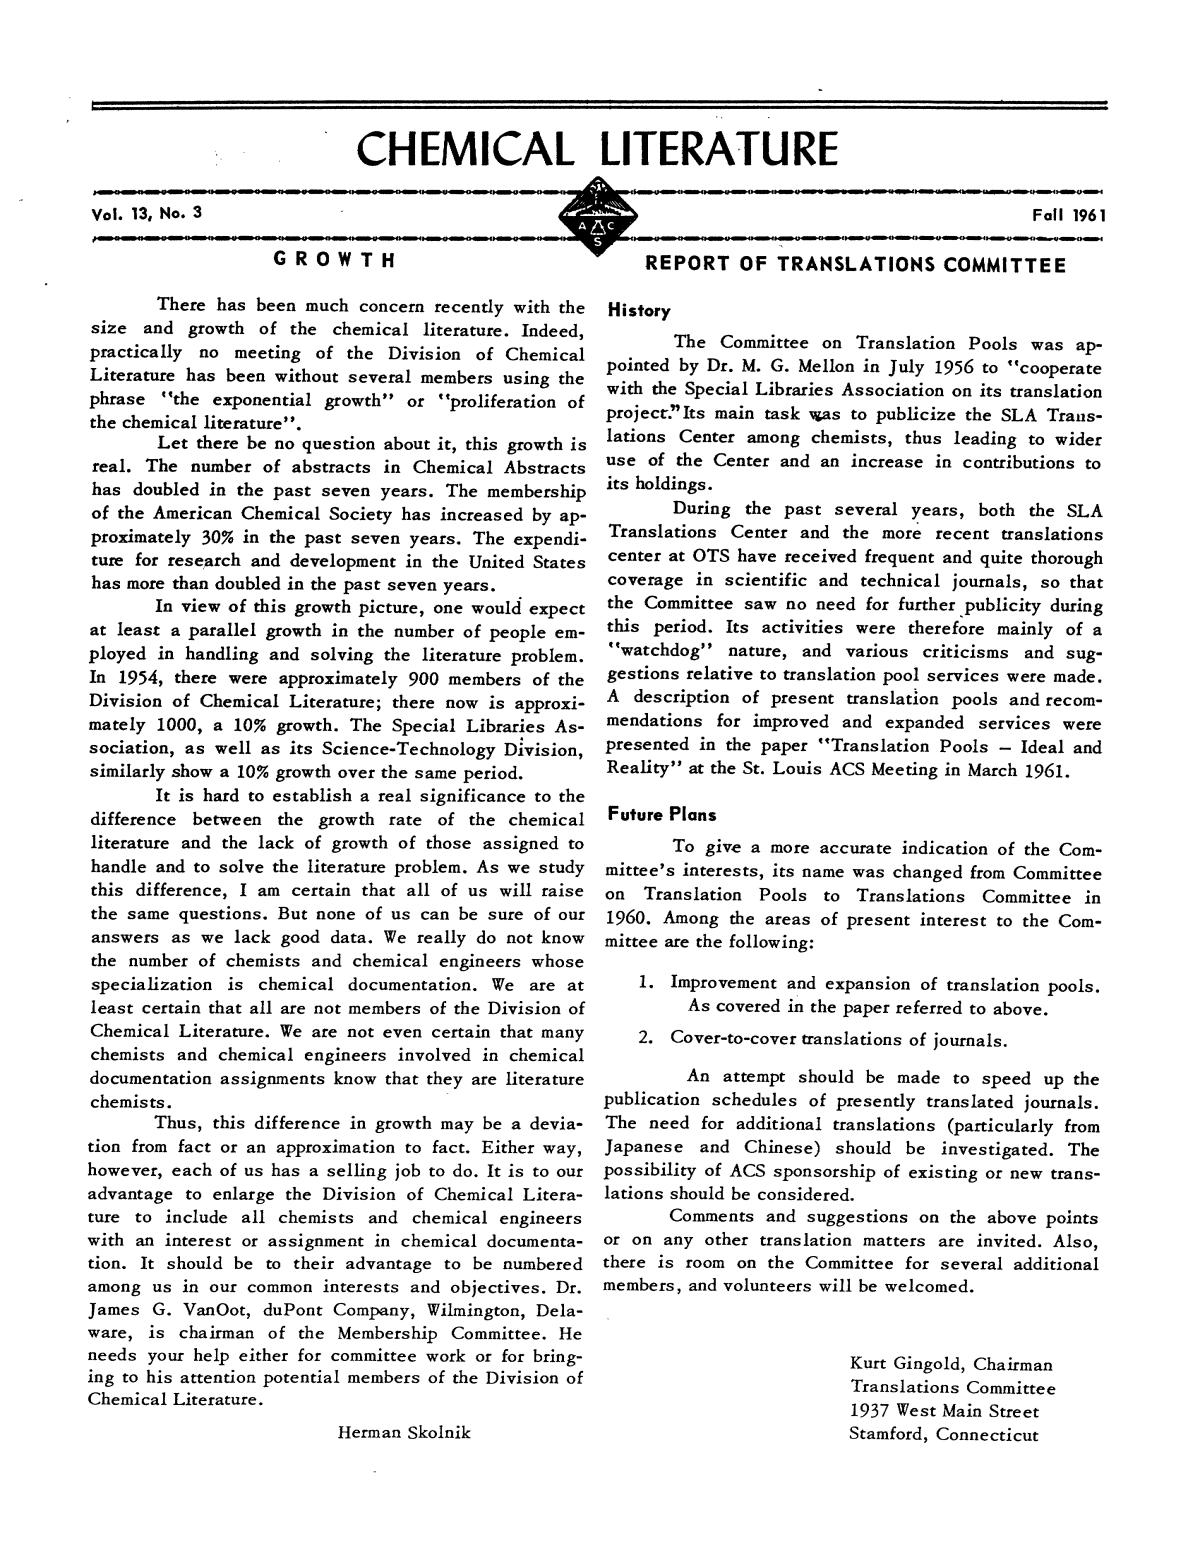 Chemical Literature, Volume 13, Number 3, Fall 1961                                                                                                      1